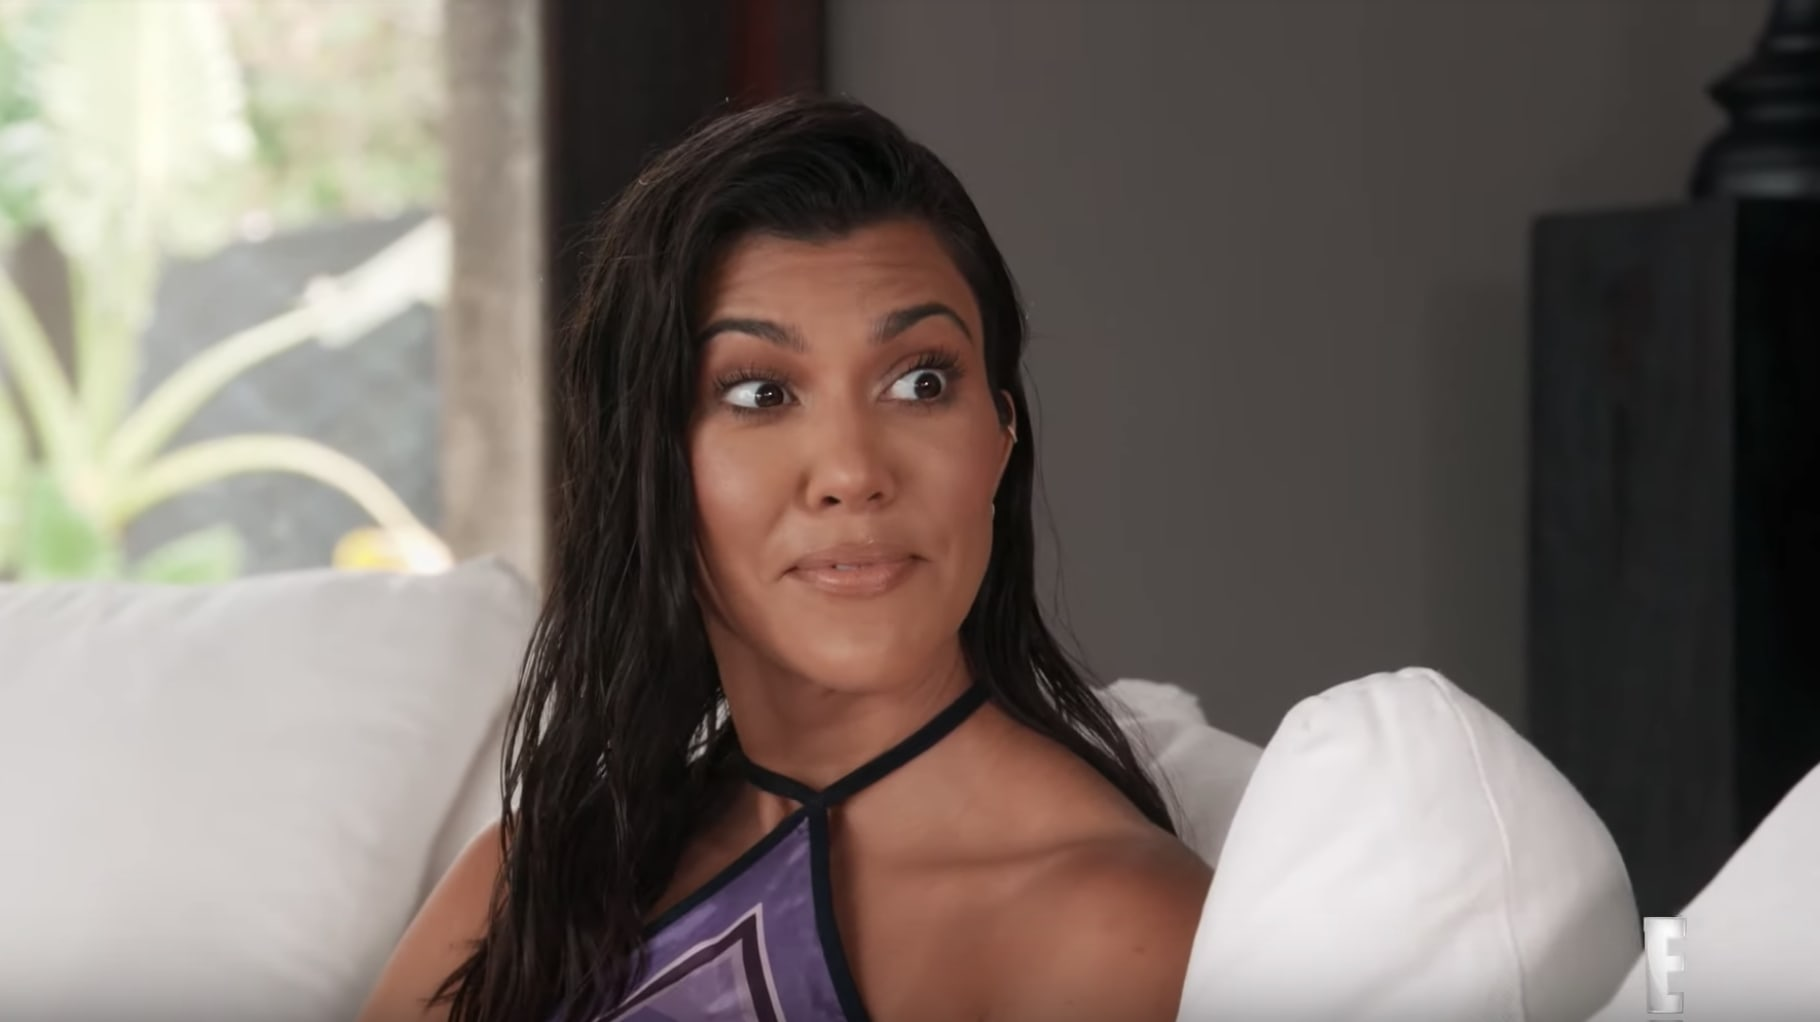 Kourtney Kardashian Told to Decide if She'll Ever Get Back With 'Soulmate' Scott Disick on 'KUWTK'